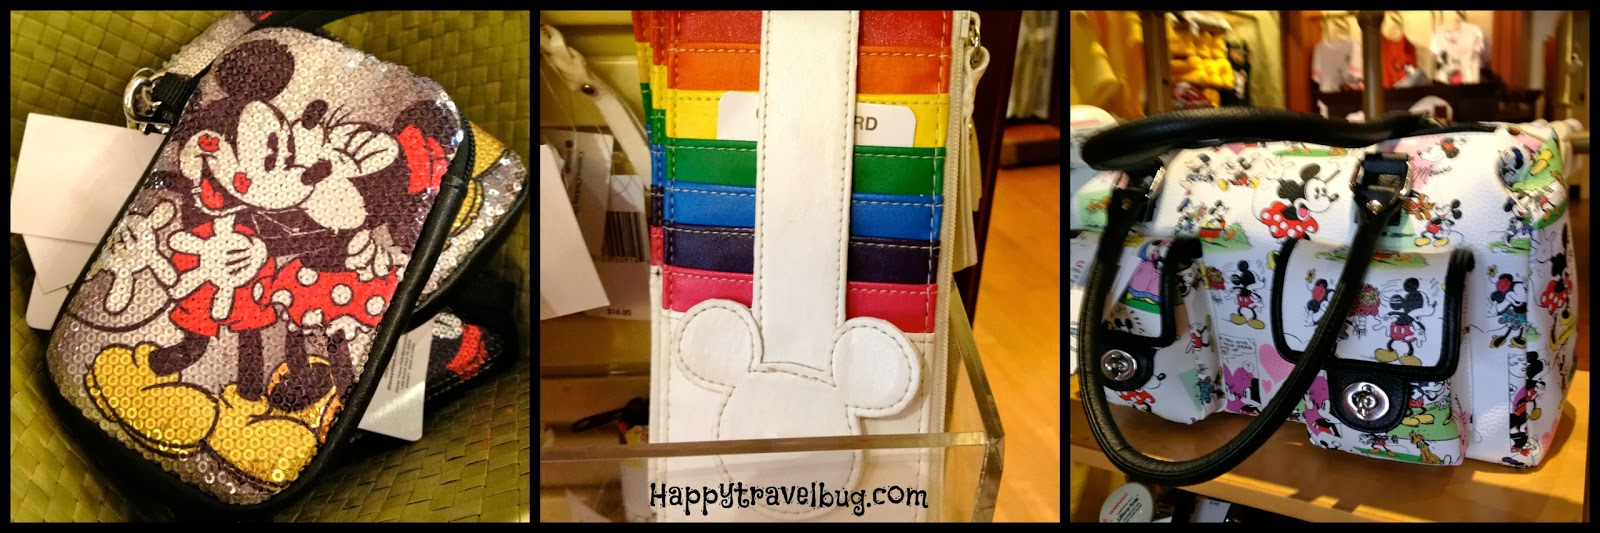 Disney handbags, wallets and organizers